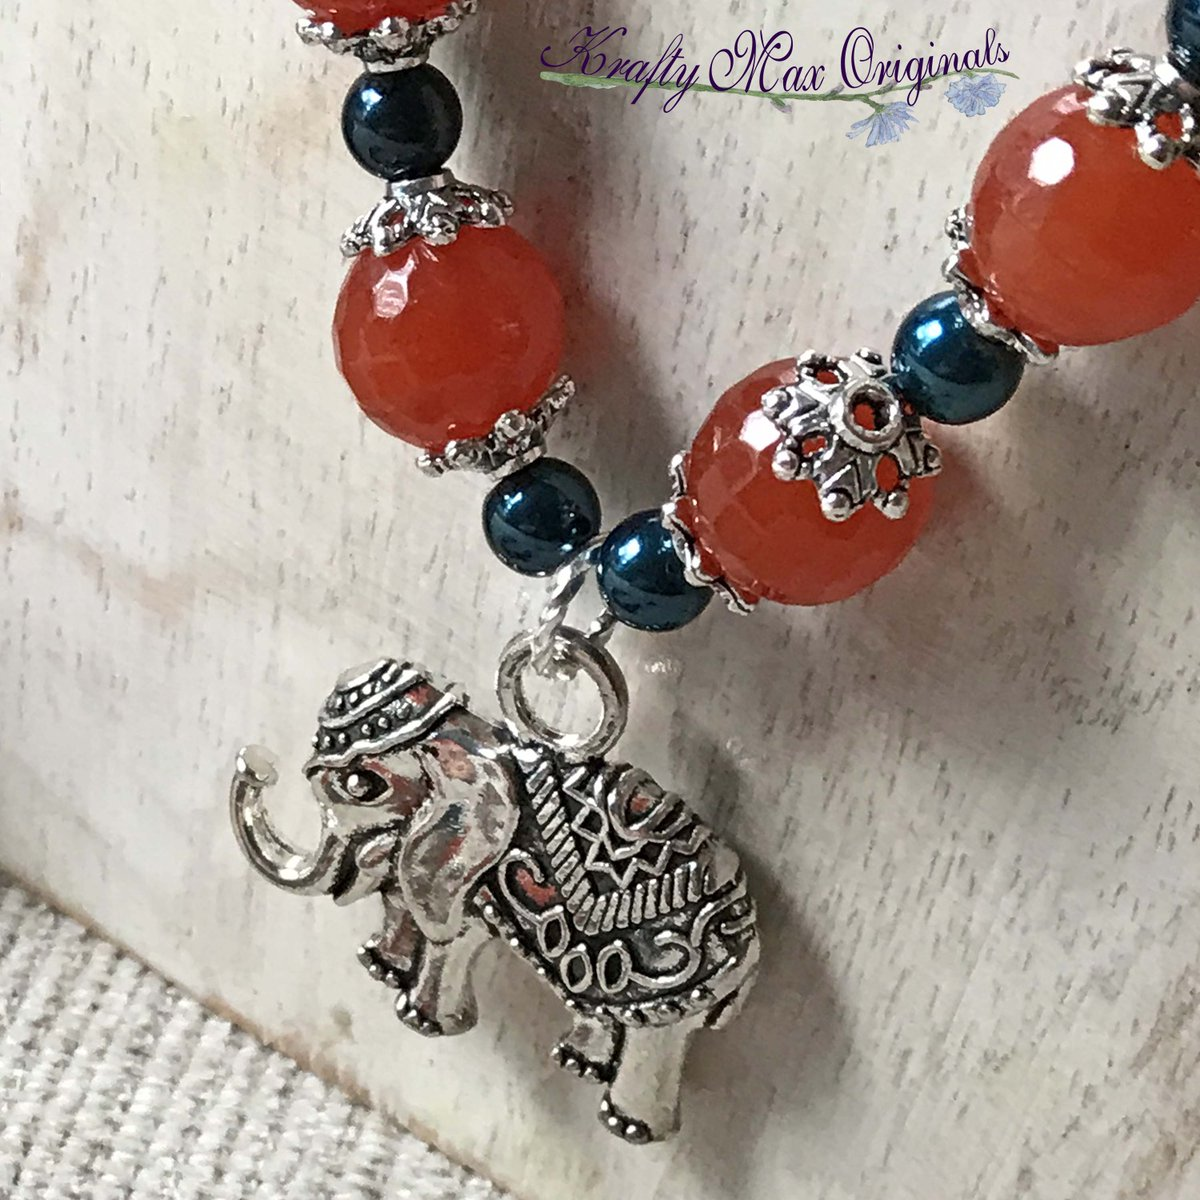 Orange Gemstones and Blue Swarovski Crystals with Elephants – Necklace Bracelet and Earrings Set (discounted from $61 down to $30)  #handmade #jewelry #buyhandmade #handmadelove #handcrafted #kraftymax #kmax #discount #sale #bargain #save #clearance